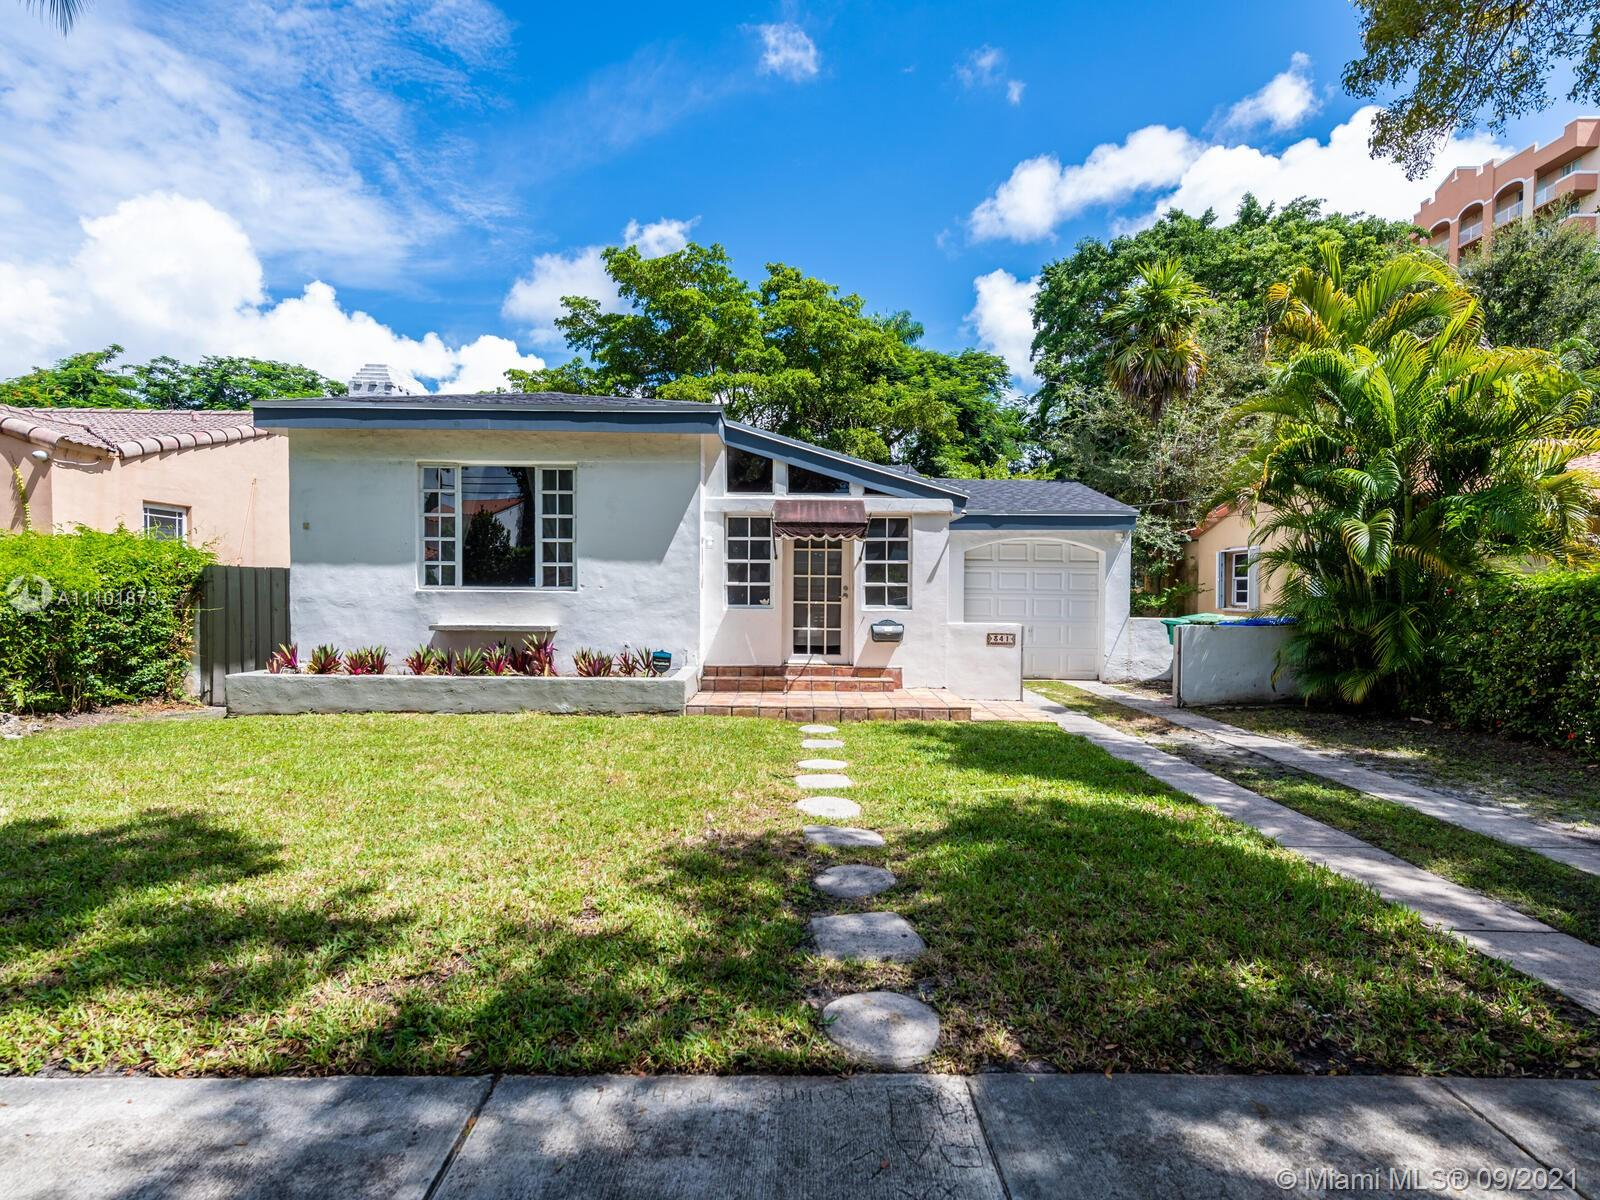 Single Family Home,For Rent,341 SW 31st Rd, Miami, Florida 33129,Brickell,realty,broker,condos near me